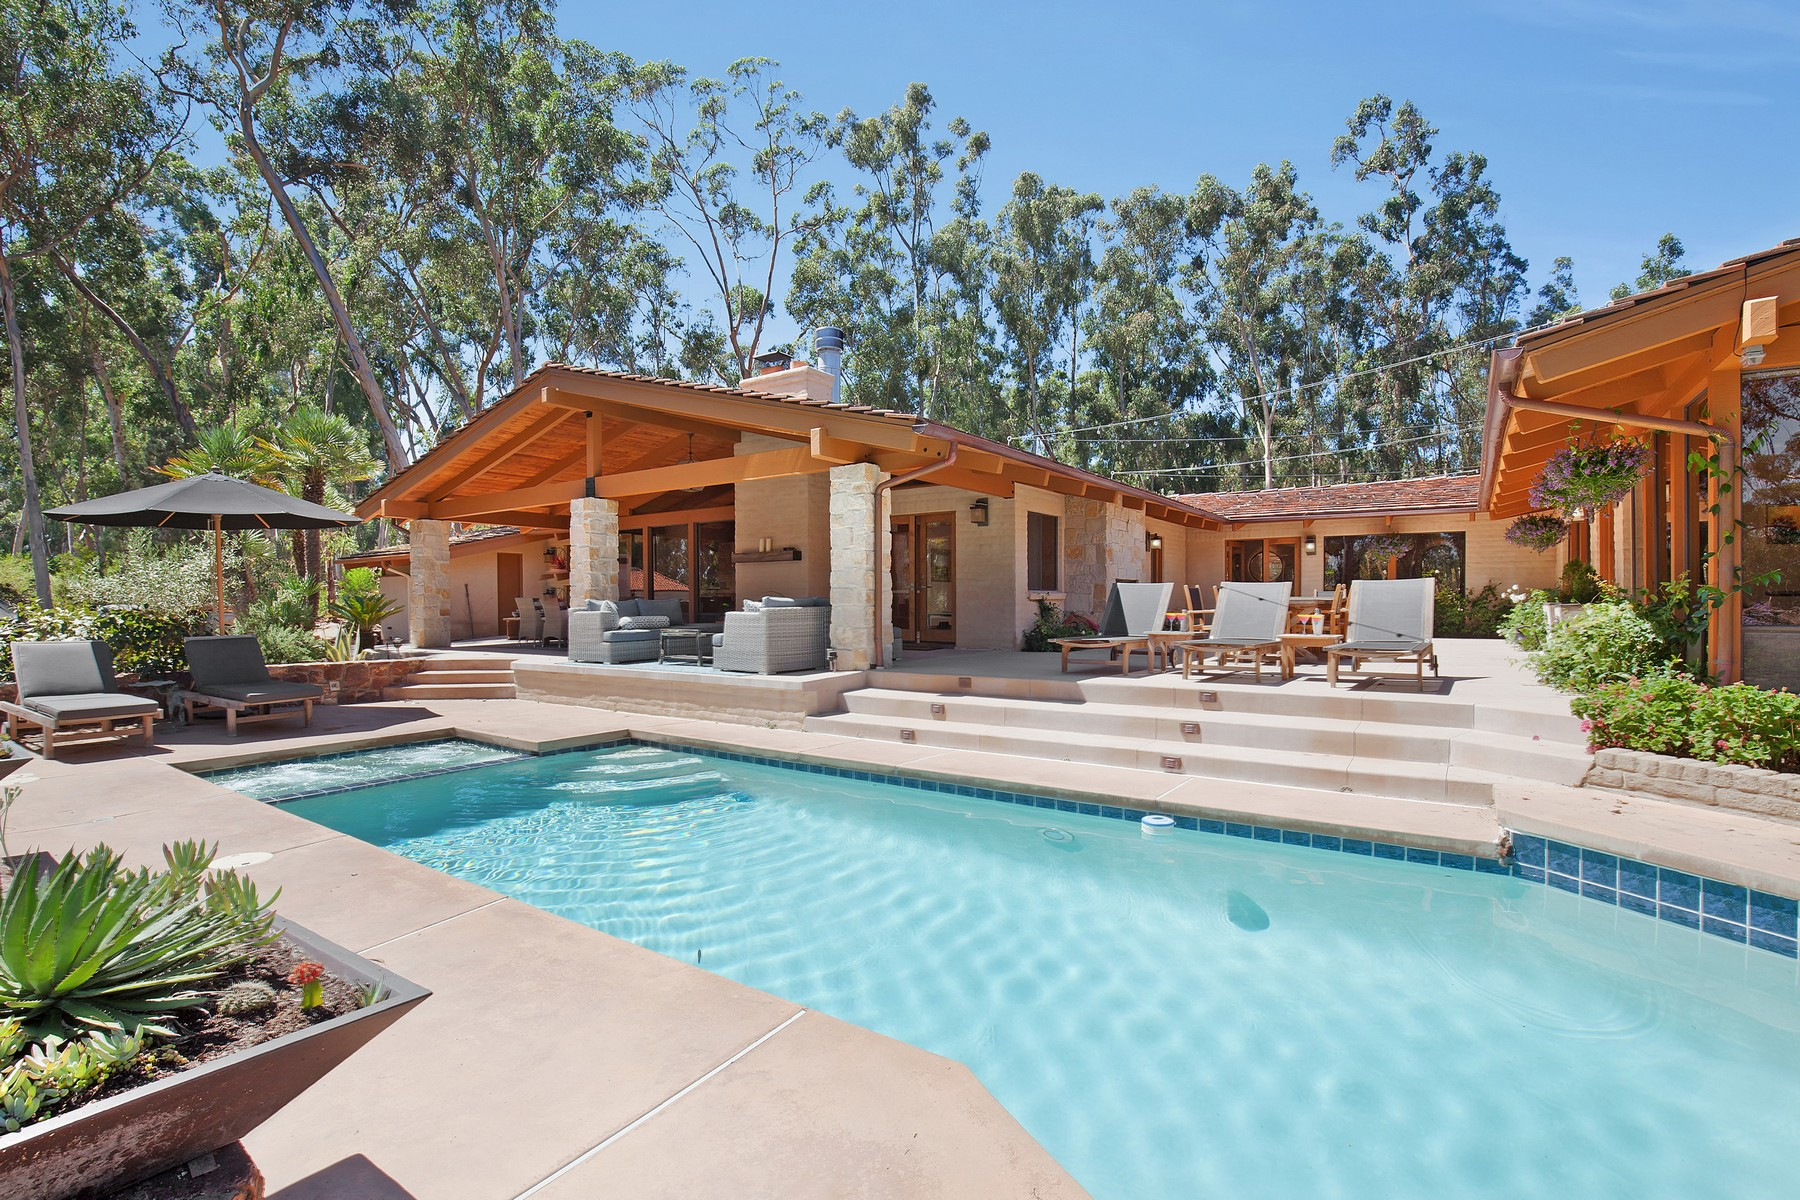 Single Family Home for Sale at 15140 Las Planideras Rancho Santa Fe, California, 92067 United States